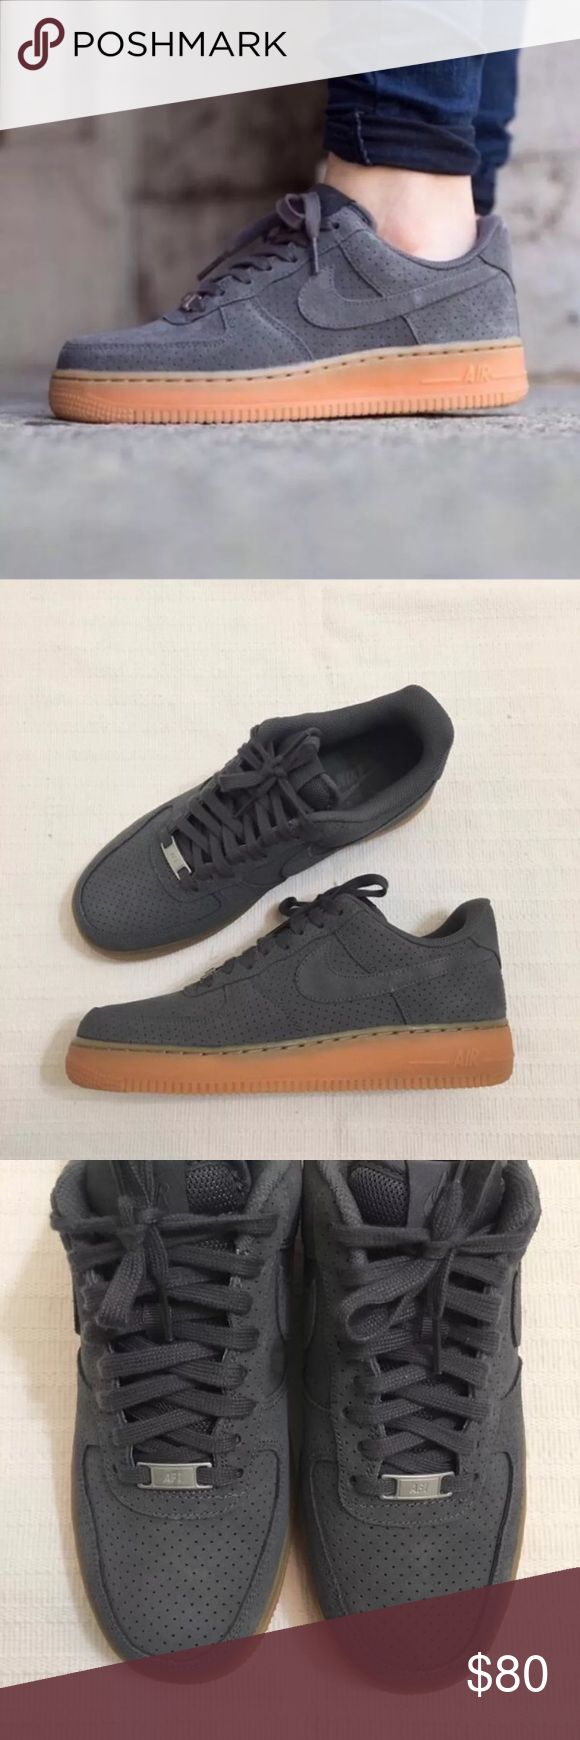 Women's Nike Air Force 1 '07 Mid Suede Sneakers Women's Nike Air Force 1 '07 Mid Suede Sneakers keeps you looking cool with its timeless style. Style/Color: 749263-001  * Women's size 9  * NEW in box (no lid) * No trades * 100% authentic Nike Shoes Sneakers